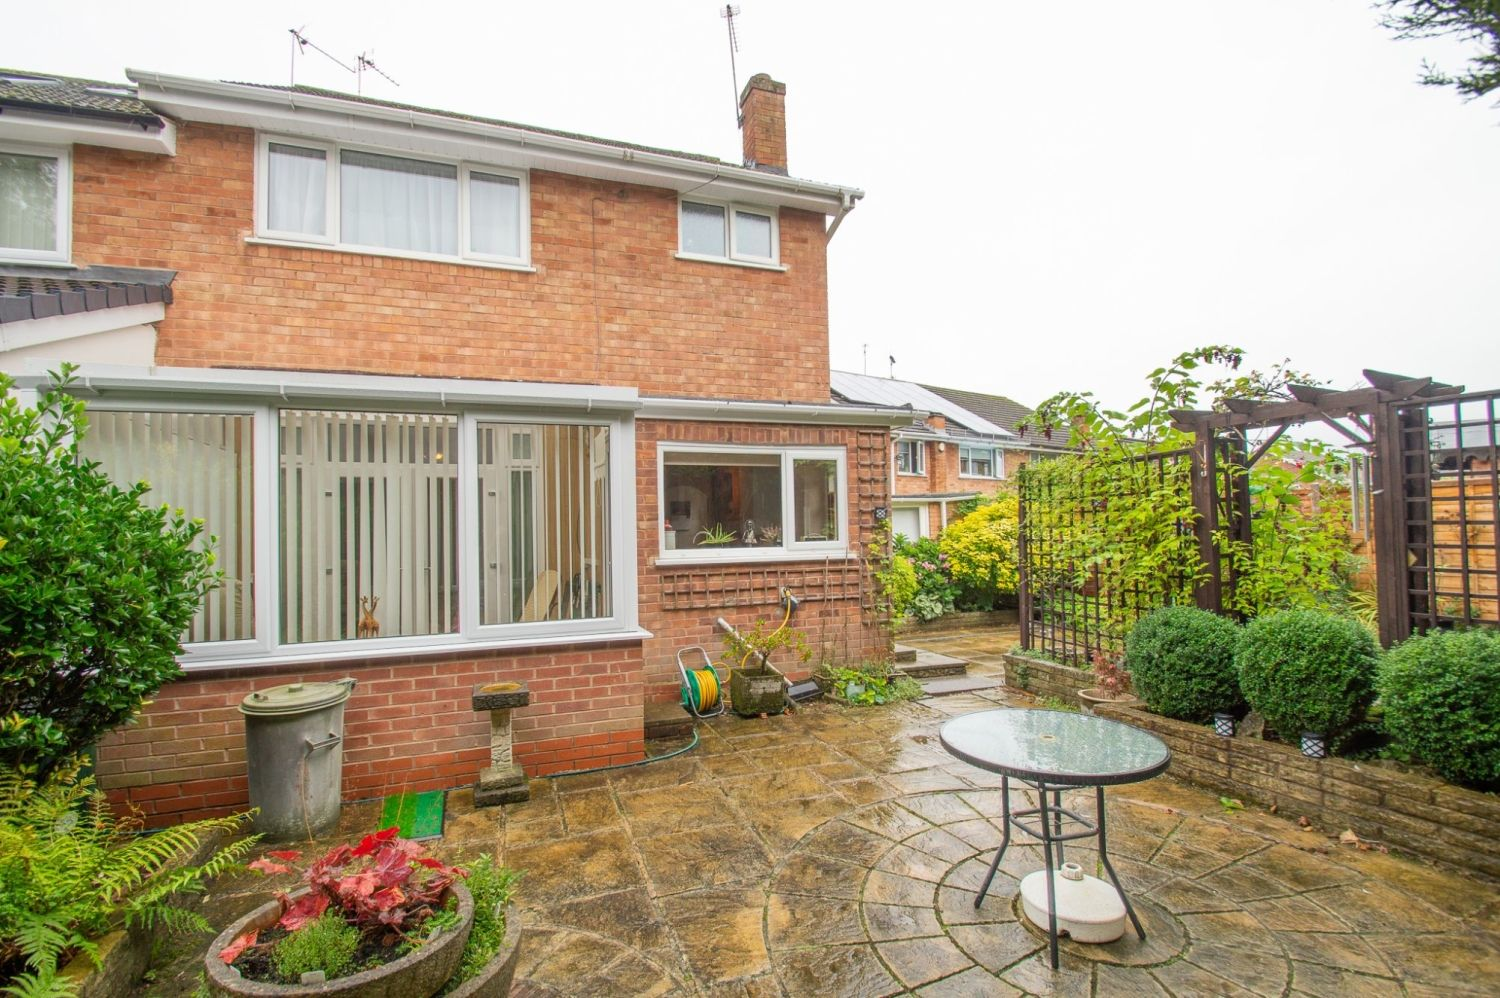 3 bed semi-detached for sale in Vicarage Crescent, Redditch  - Property Image 15